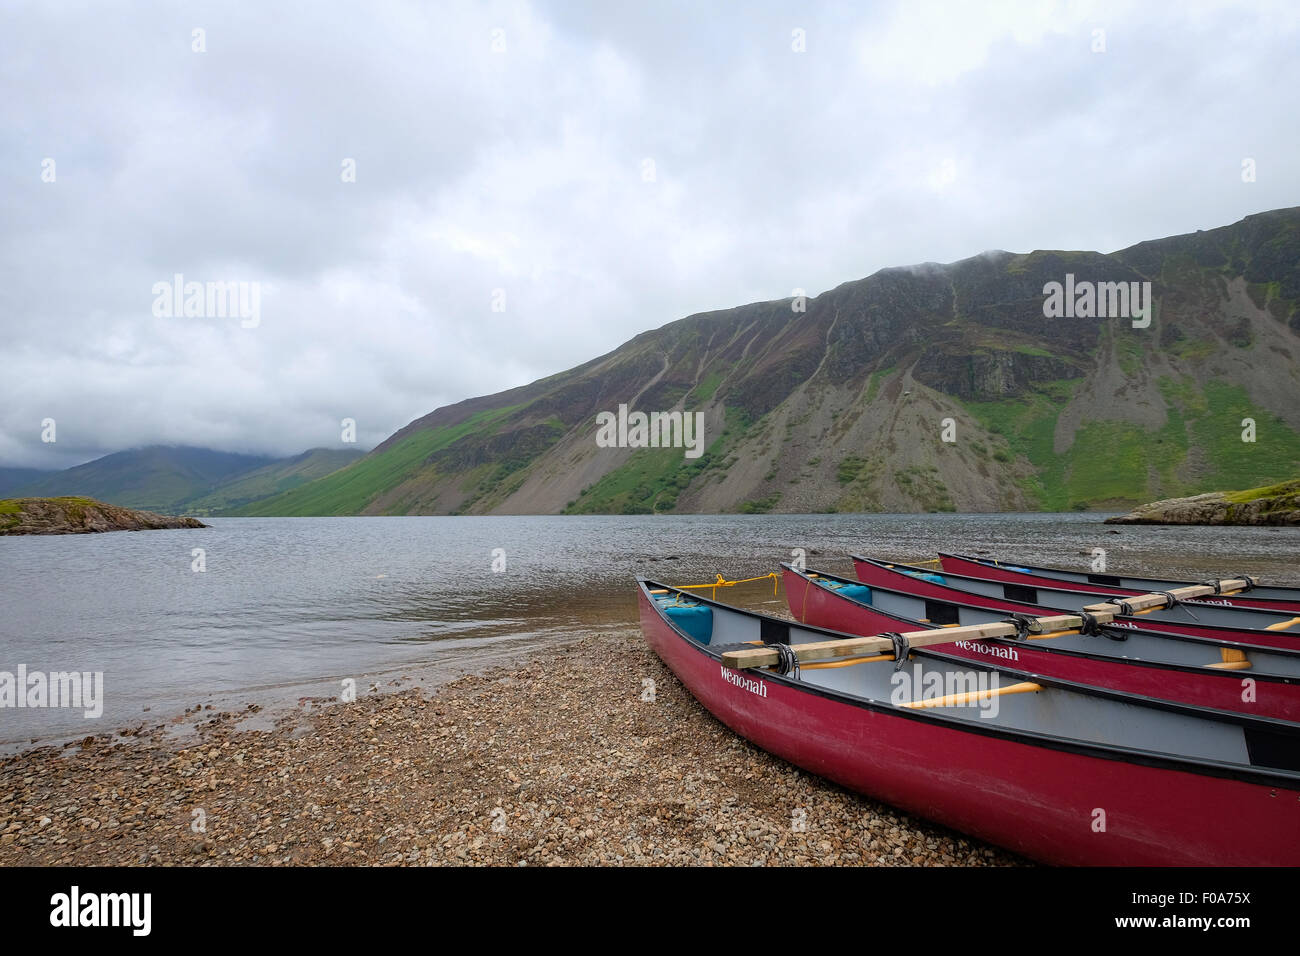 Canoe boats at Wastwater in the Lake District, Cumbria, UK Stock Photo